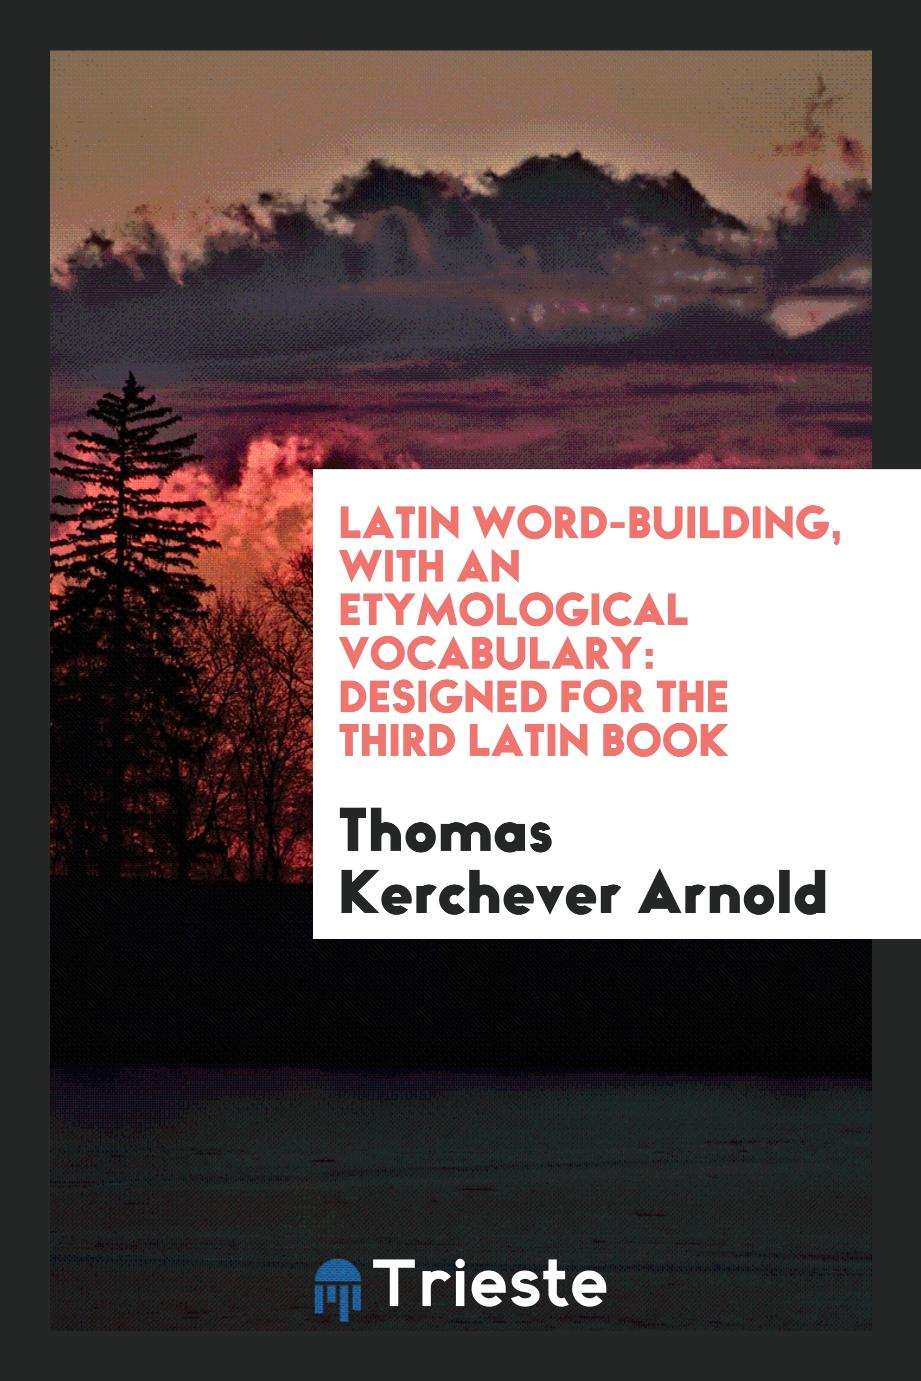 Latin Word-Building, with an Etymological Vocabulary: Designed for the Third Latin Book